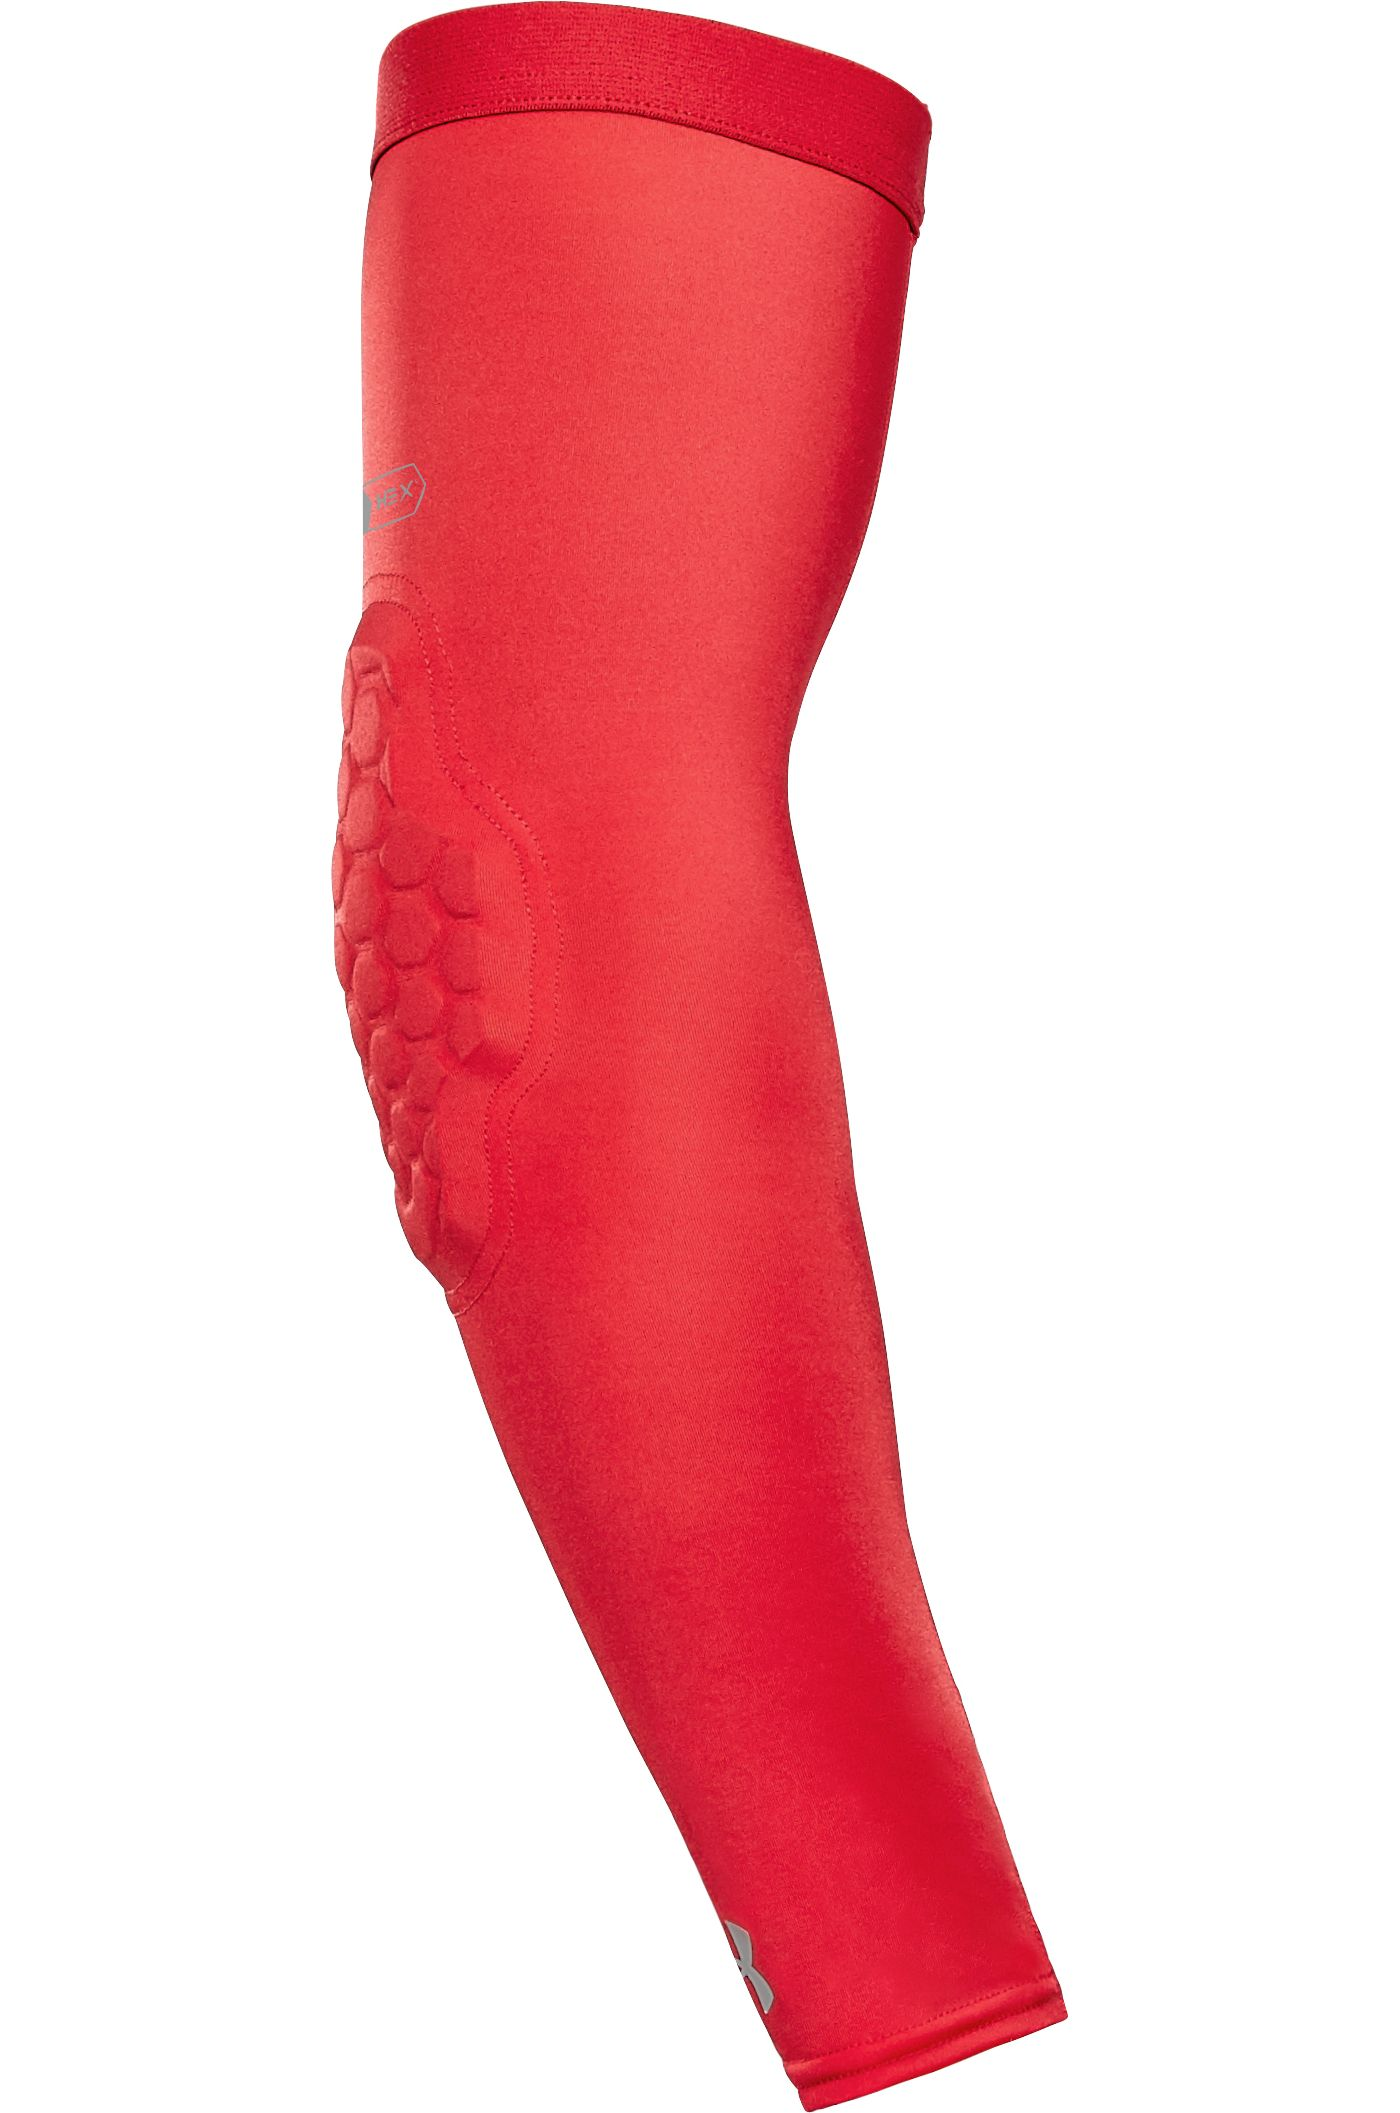 Under Armour Adult Game Day Armour Pro Elbow Sleeve